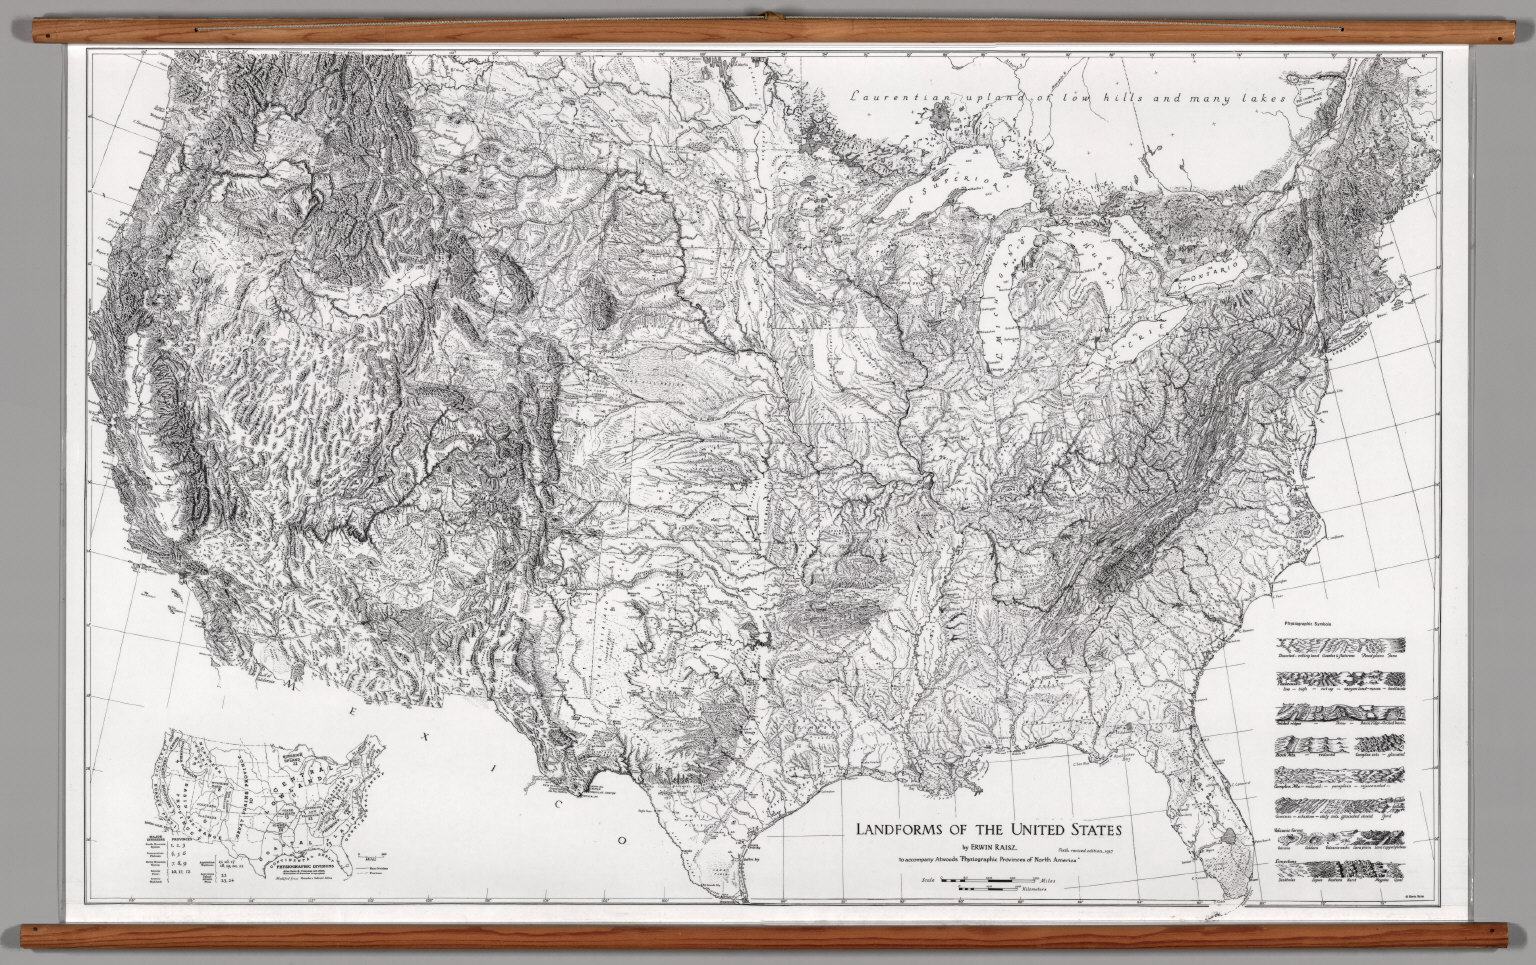 United States Physical Landforms Raisz David Rumsey - Landforms of the united states